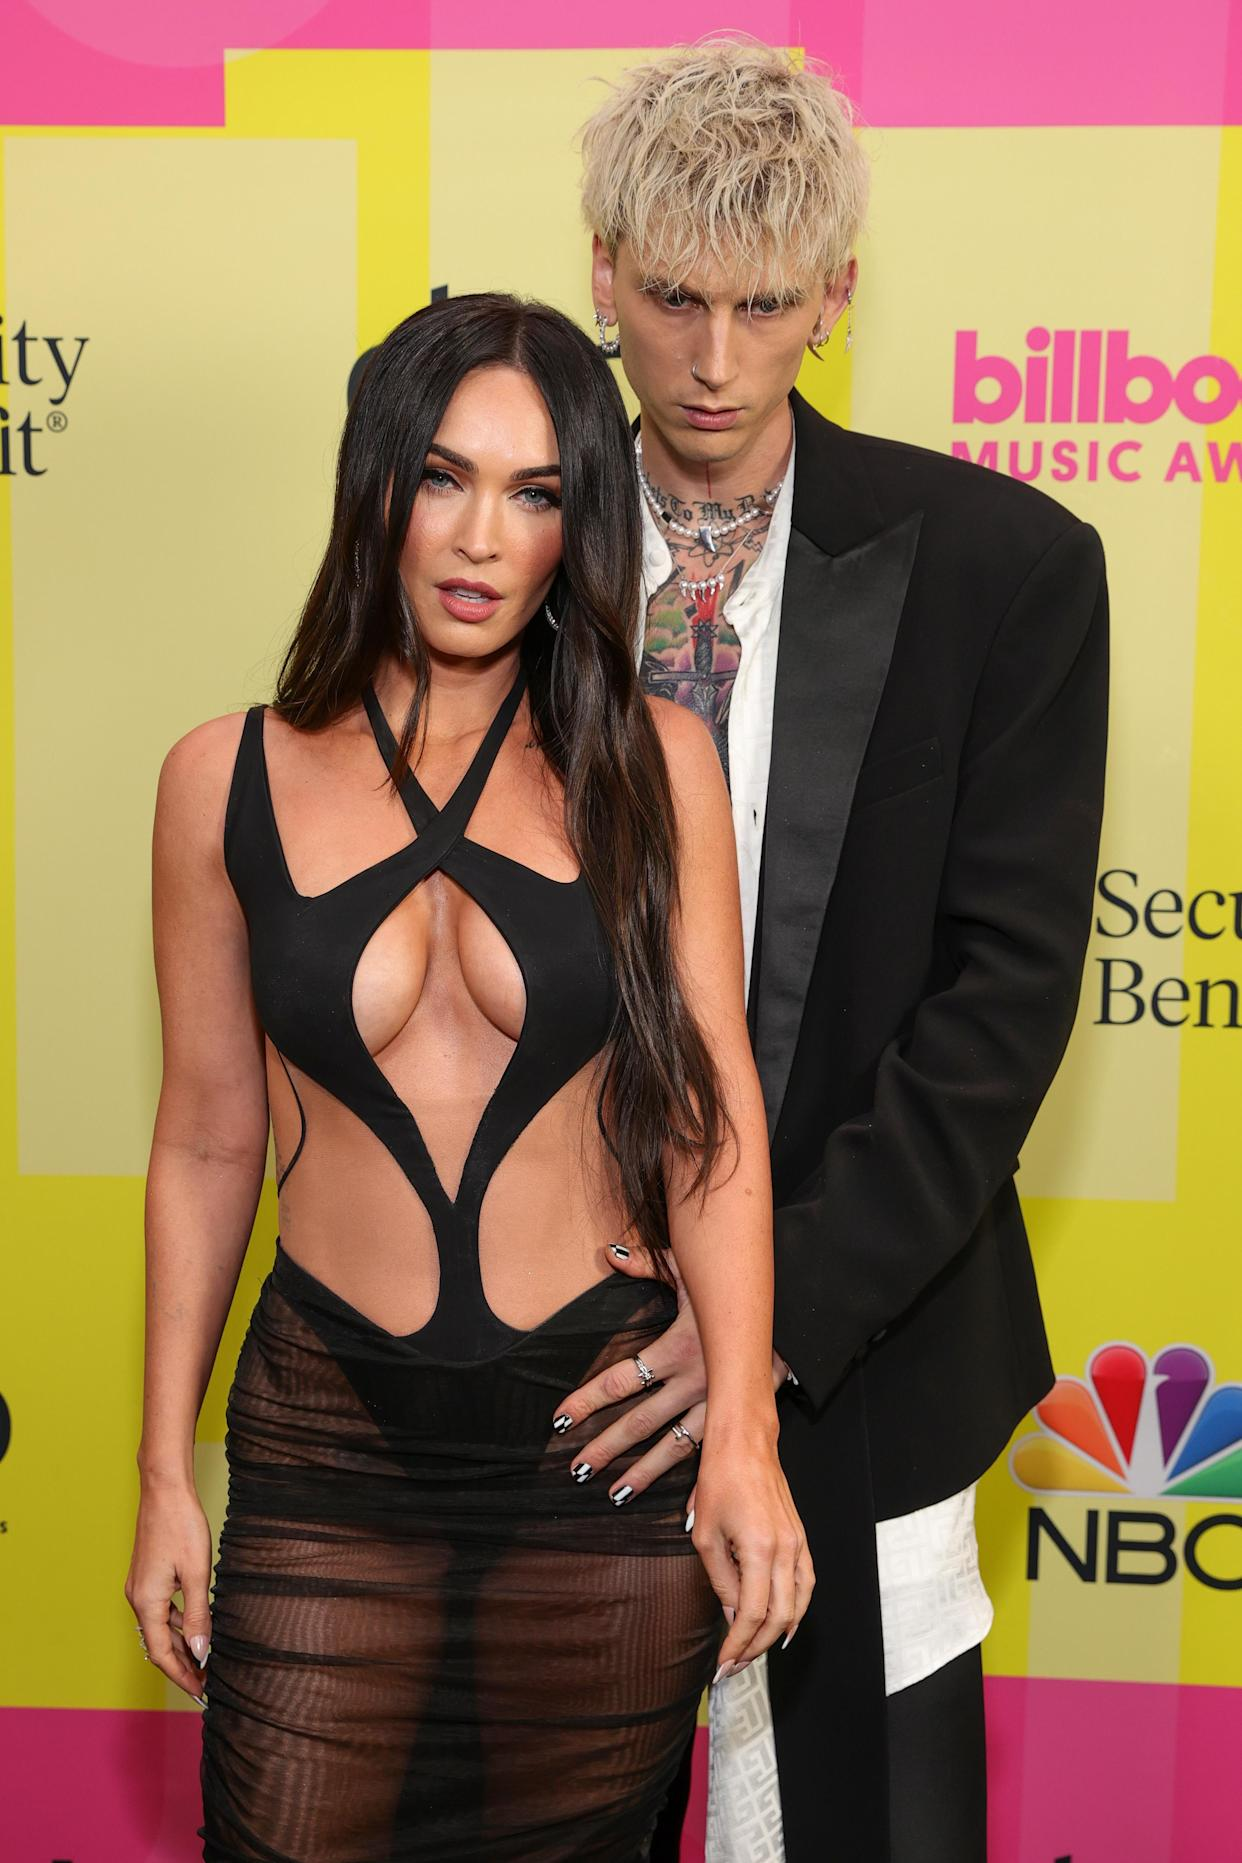 LOS ANGELES, CALIFORNIA - MAY 23: Machine Gun Kelly and Megan Fox poses backstage for the 2021 Billboard Music Awards, broadcast on May 23, 2021 at Microsoft Theater in Los Angeles, California. (Photo by Rich Fury/Getty Images for dcp)